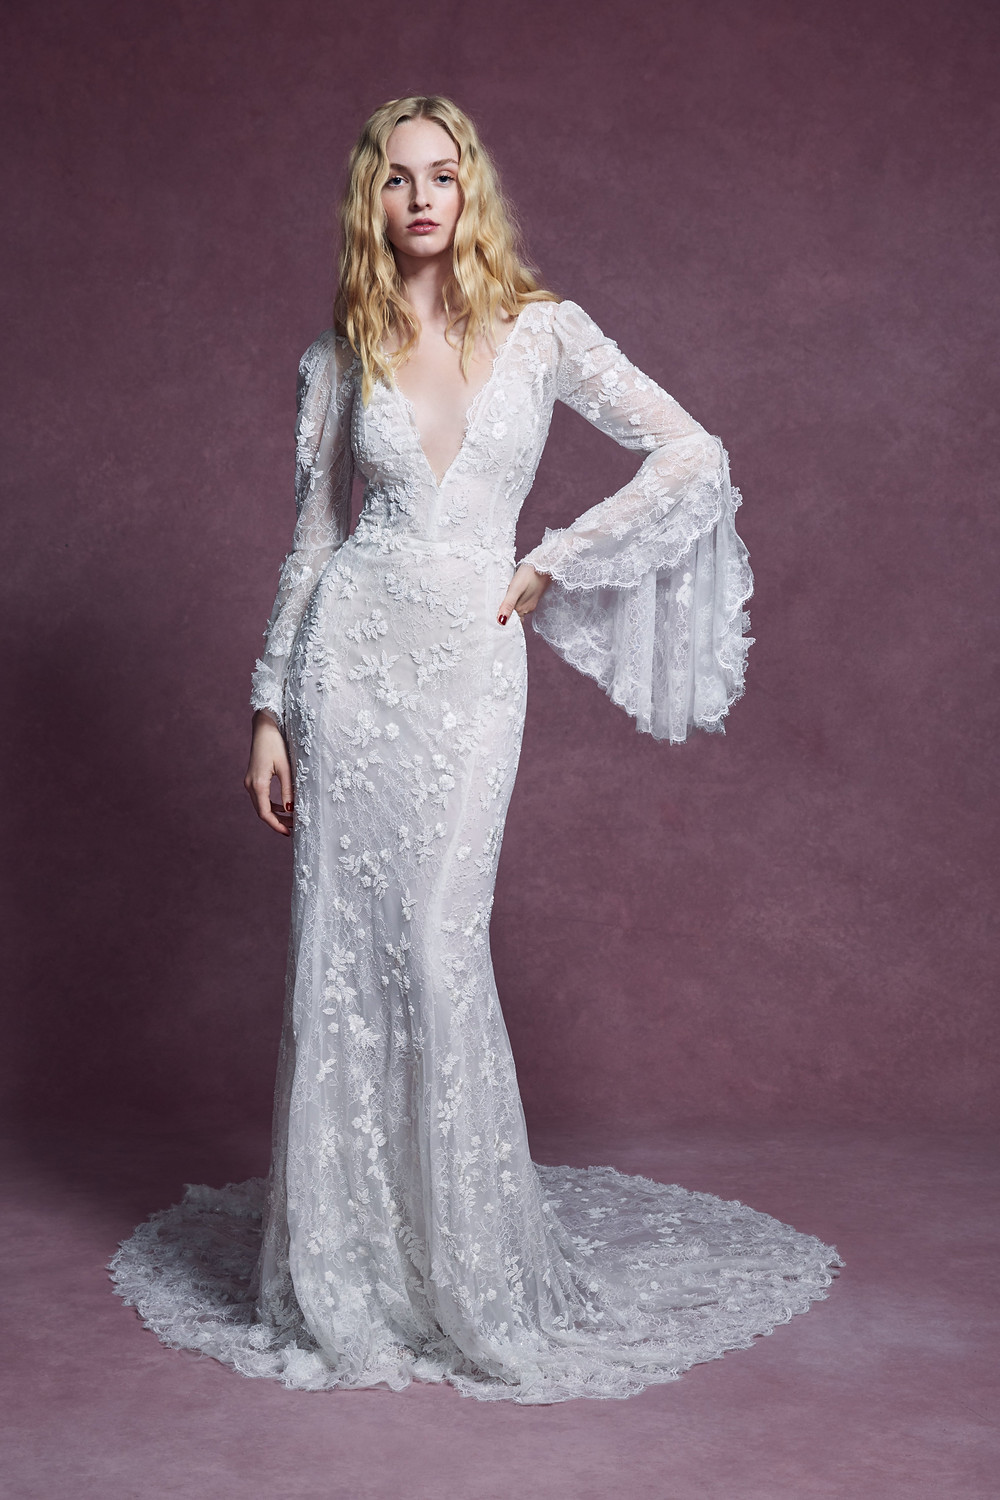 A Marchesa 2020 sheath bohemian inspired wedding dress, with a low v neckline, lace and long gypsy style sleeves